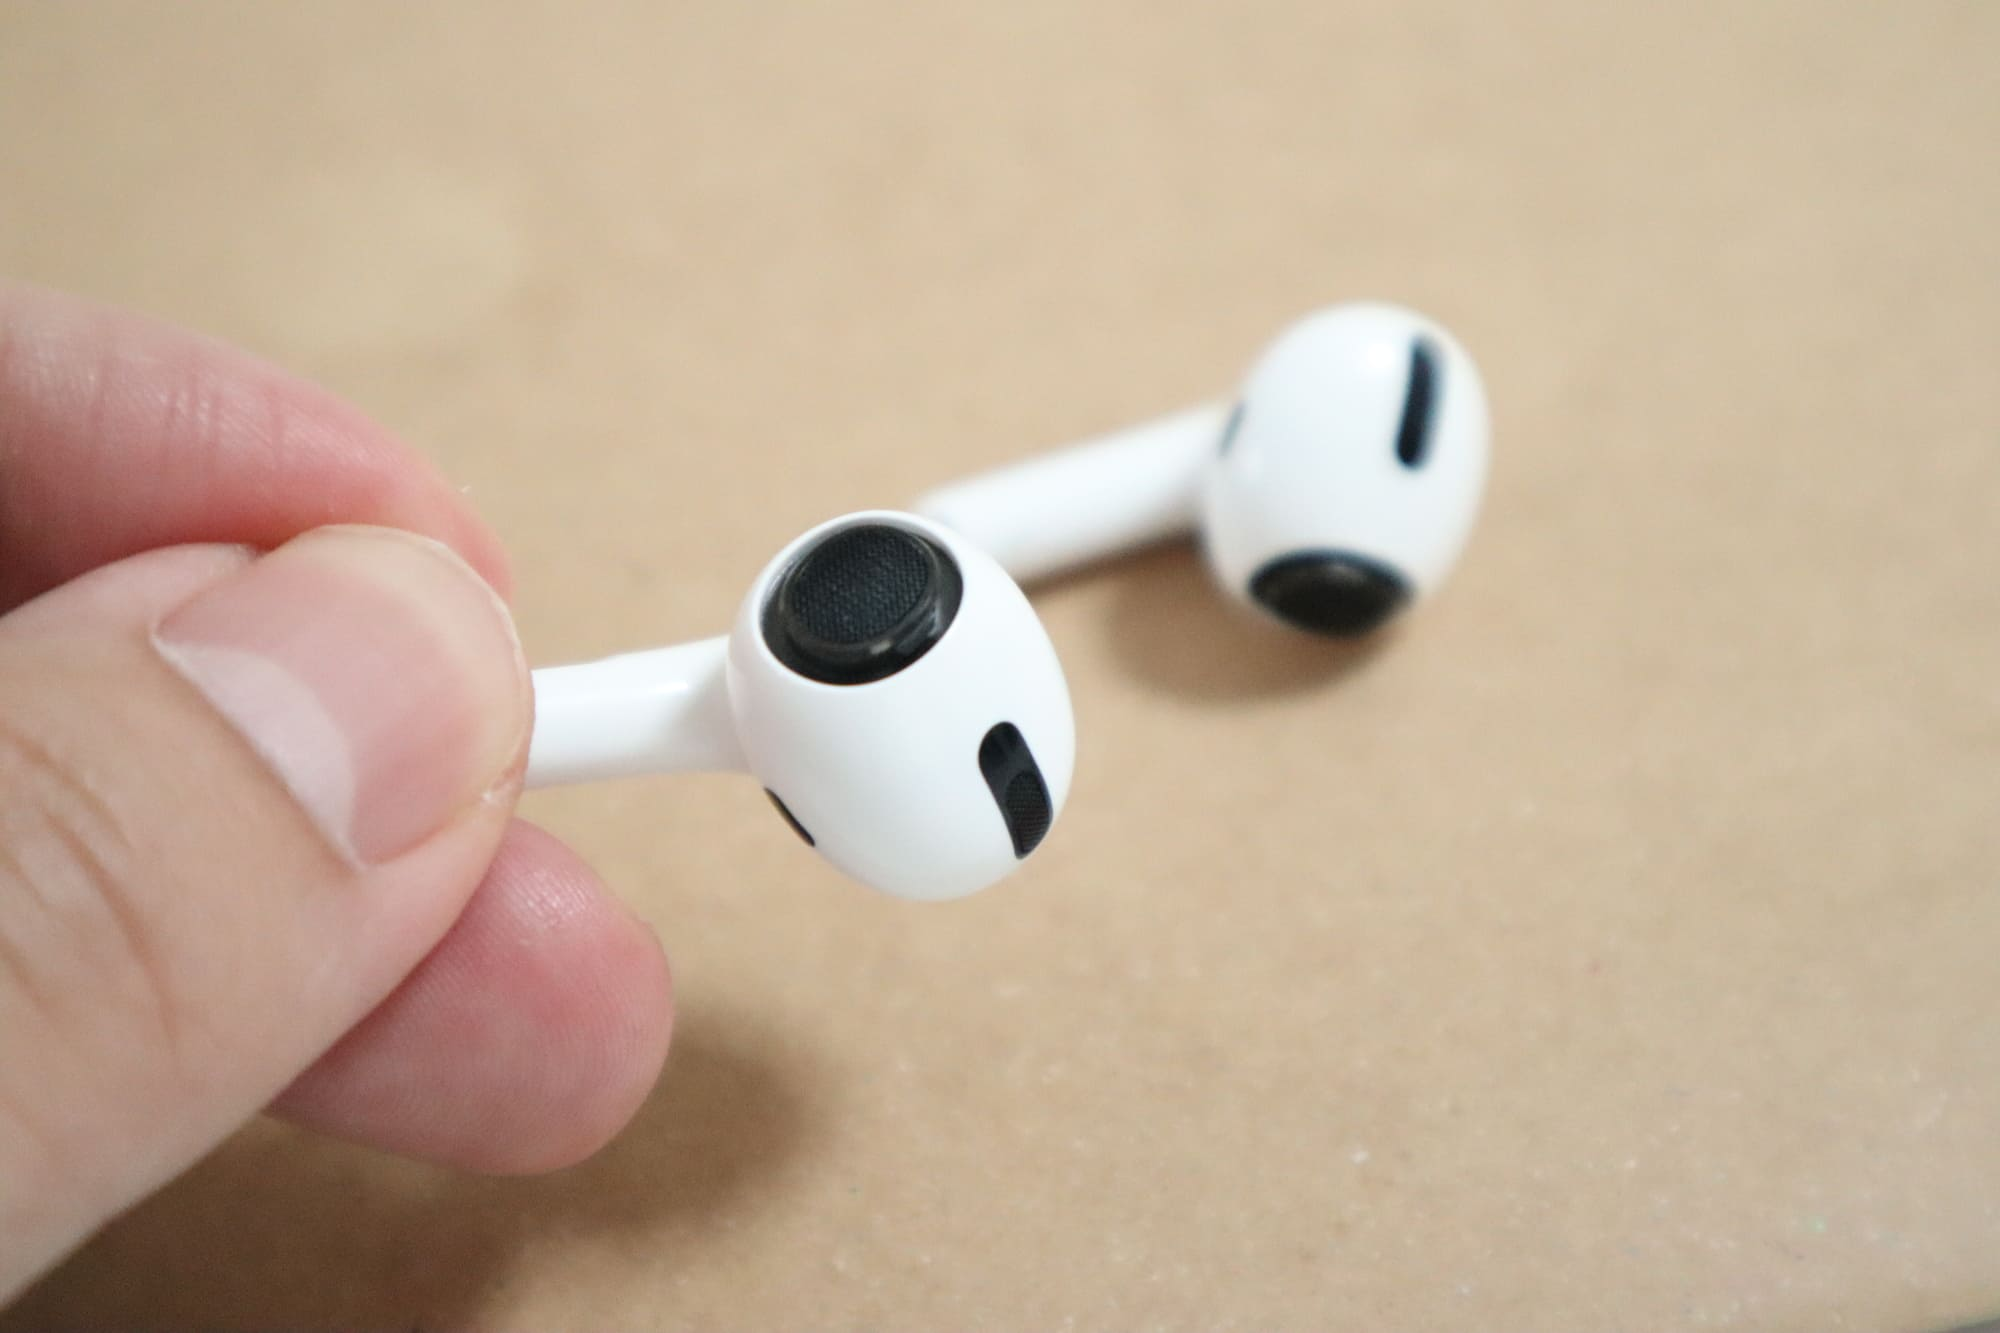 AirPods Proをつまむ